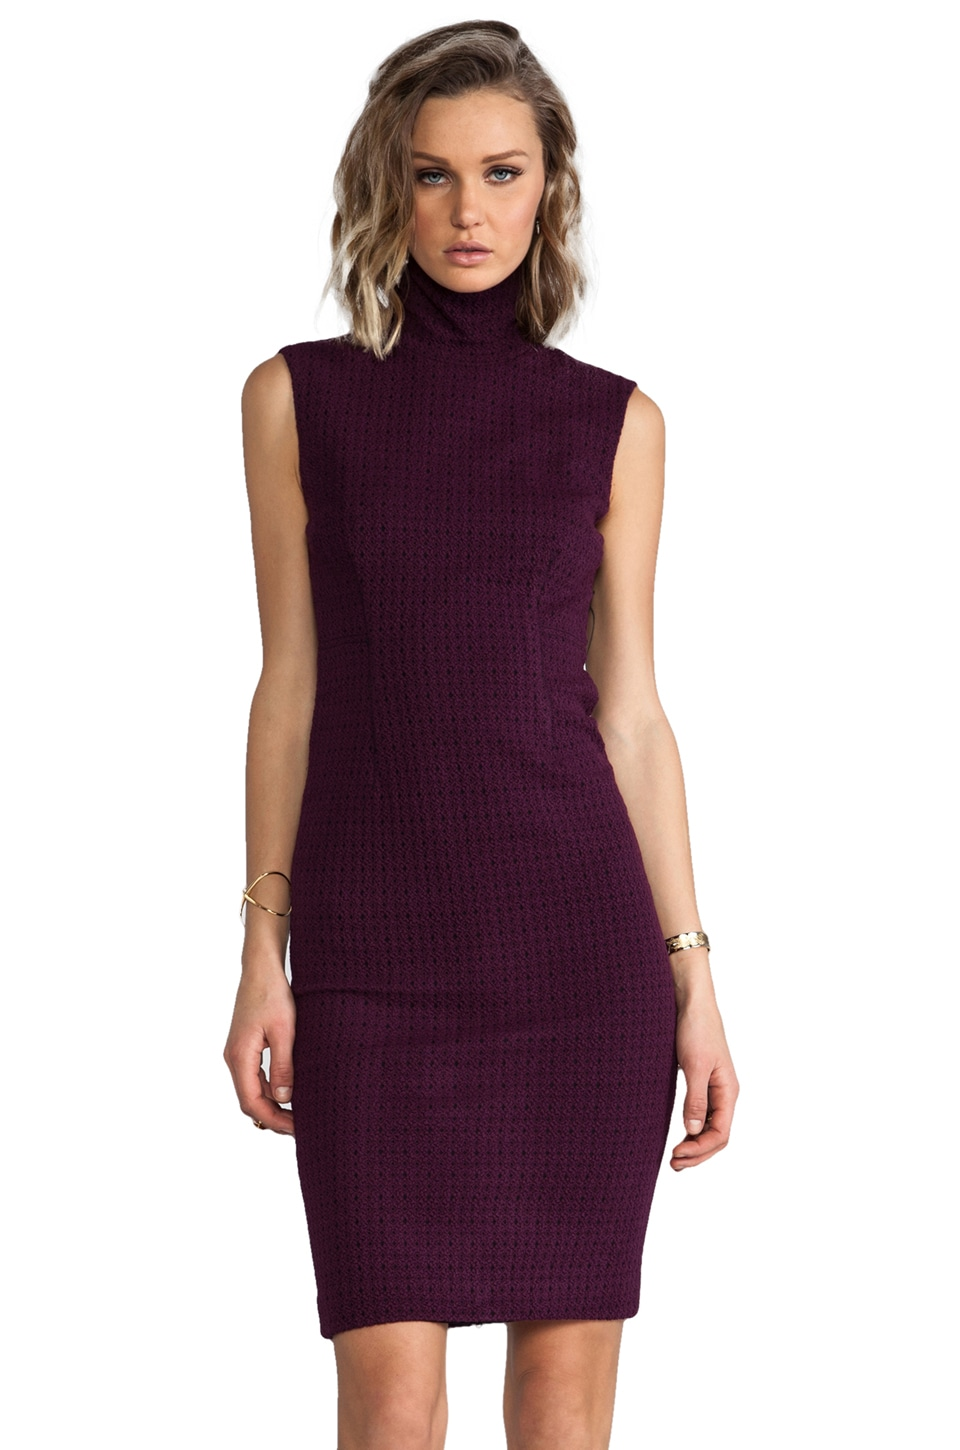 Tracy Reese Novelty Knit Lace Back Shift Dress in Magenta